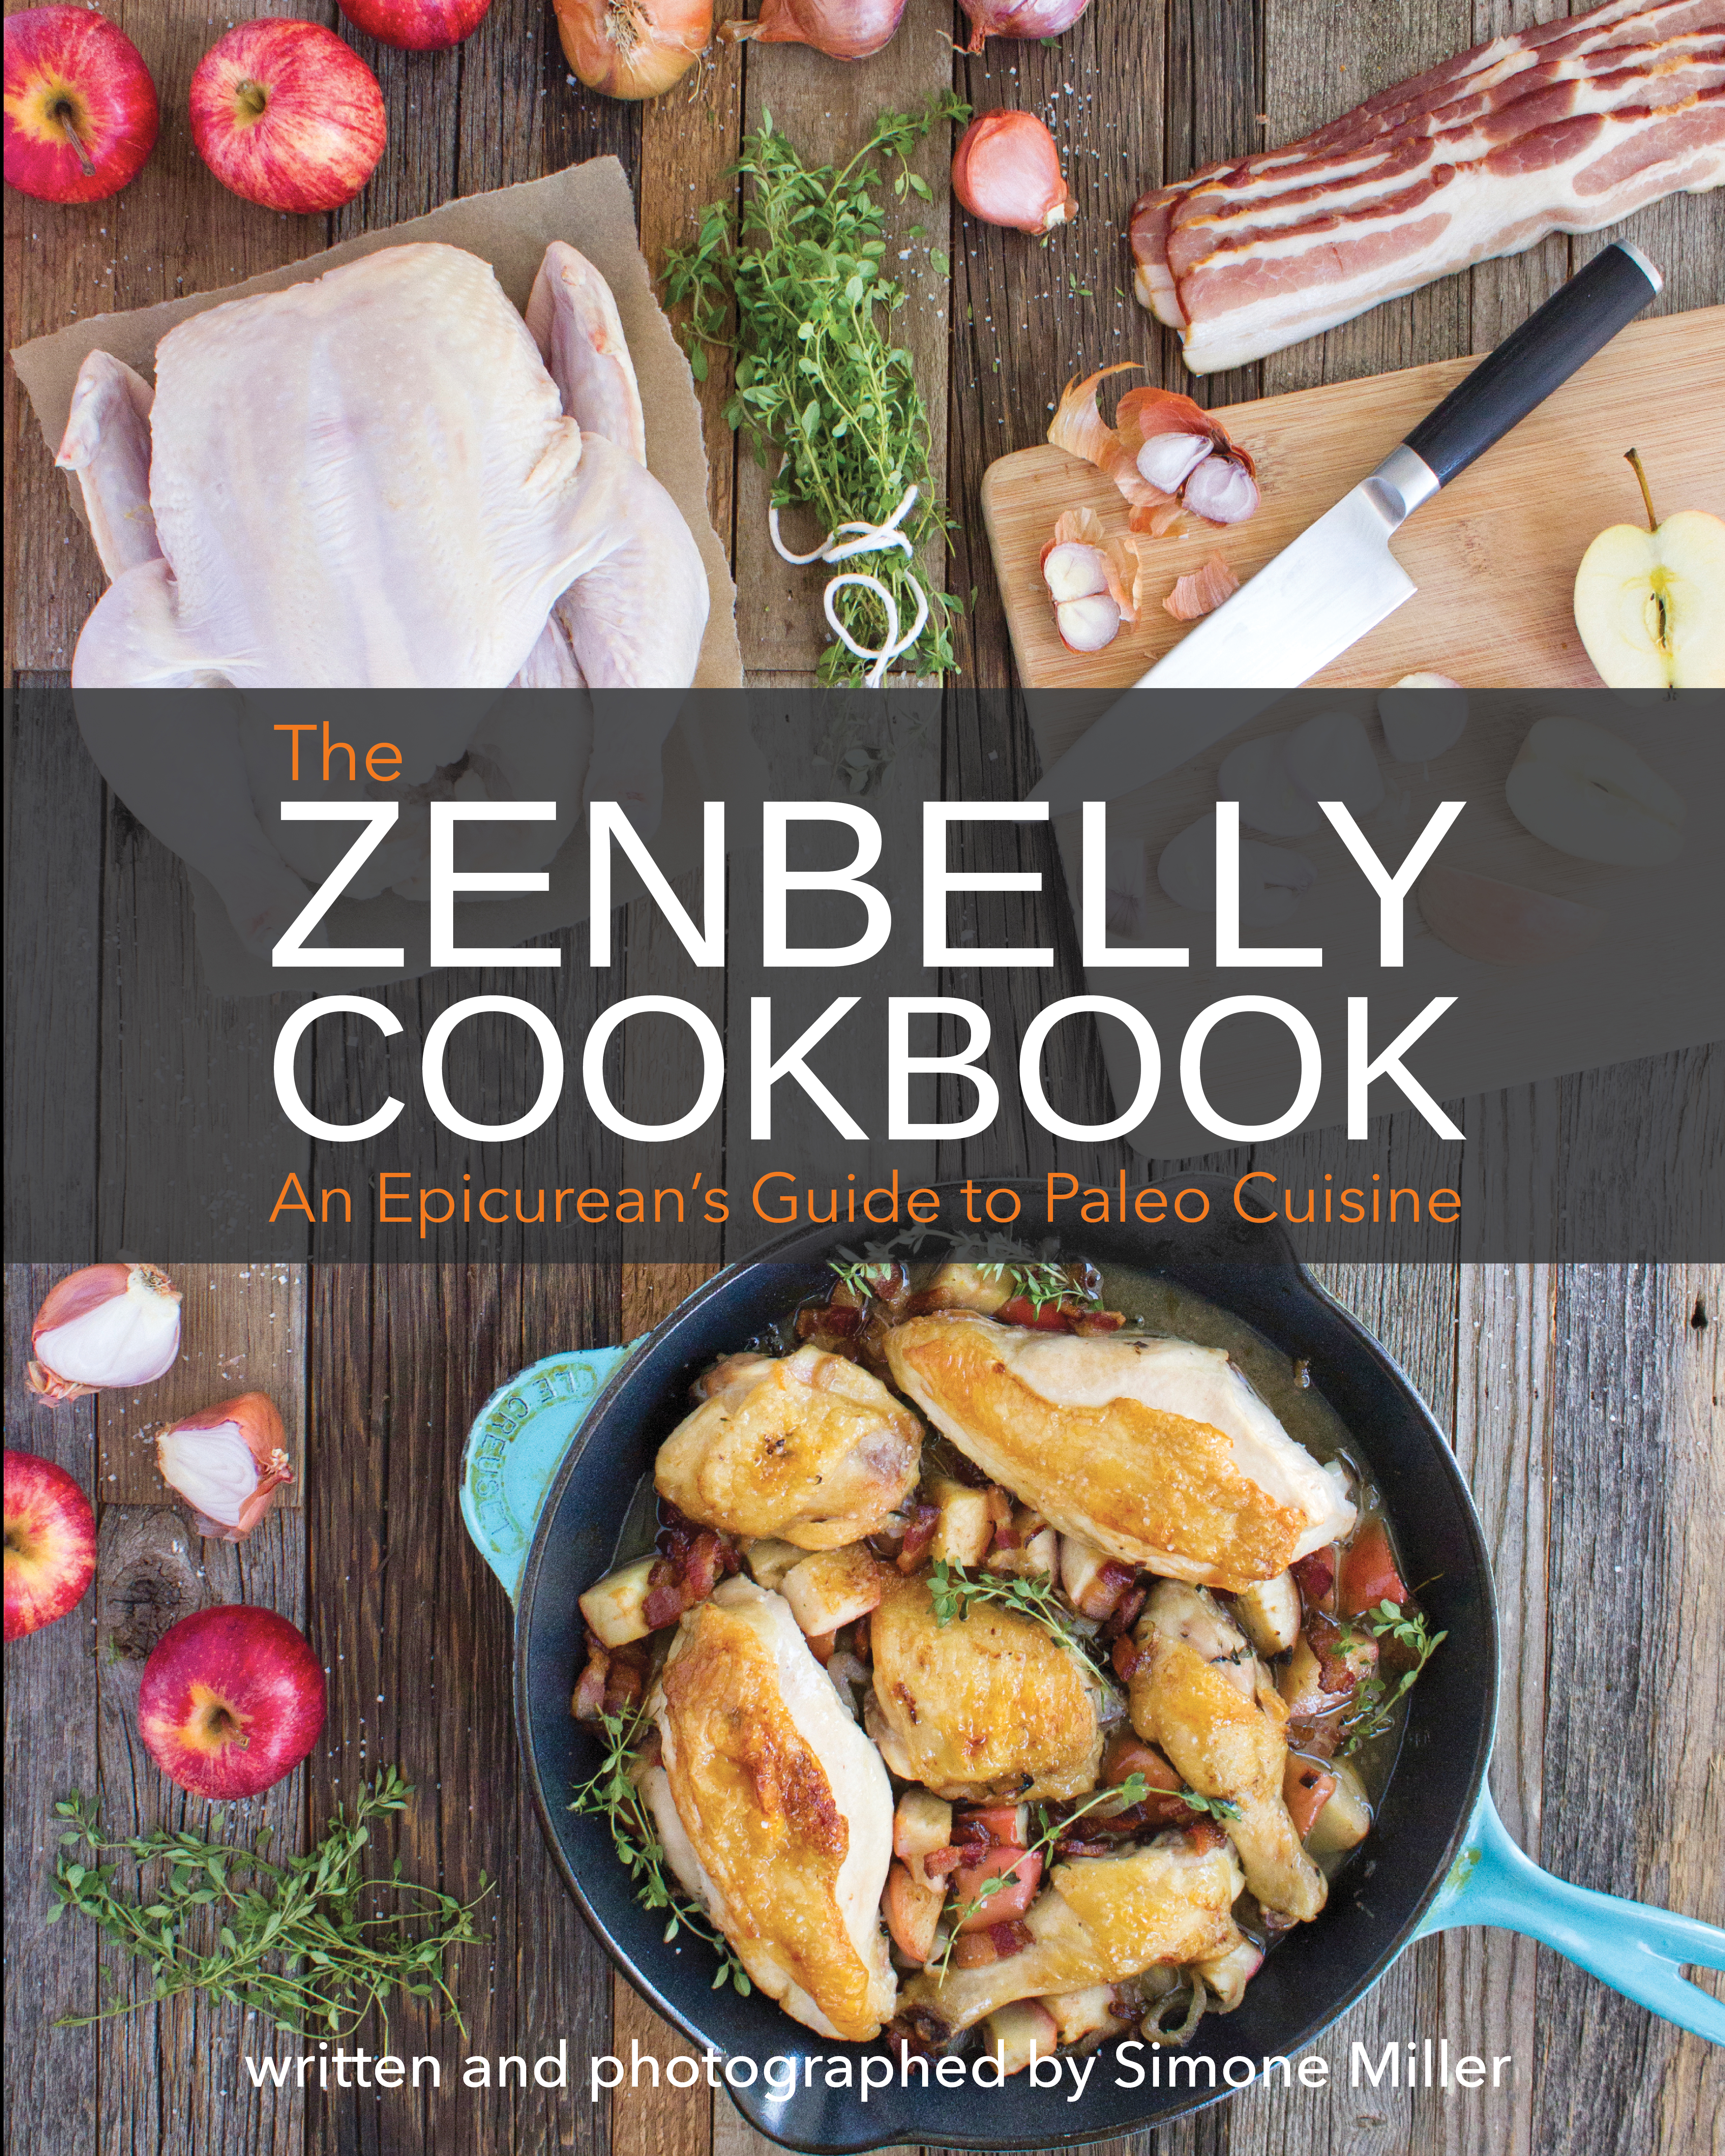 The zenbelly cookbook book by simone miller official publisher book cover image jpg the zenbelly cookbook forumfinder Image collections